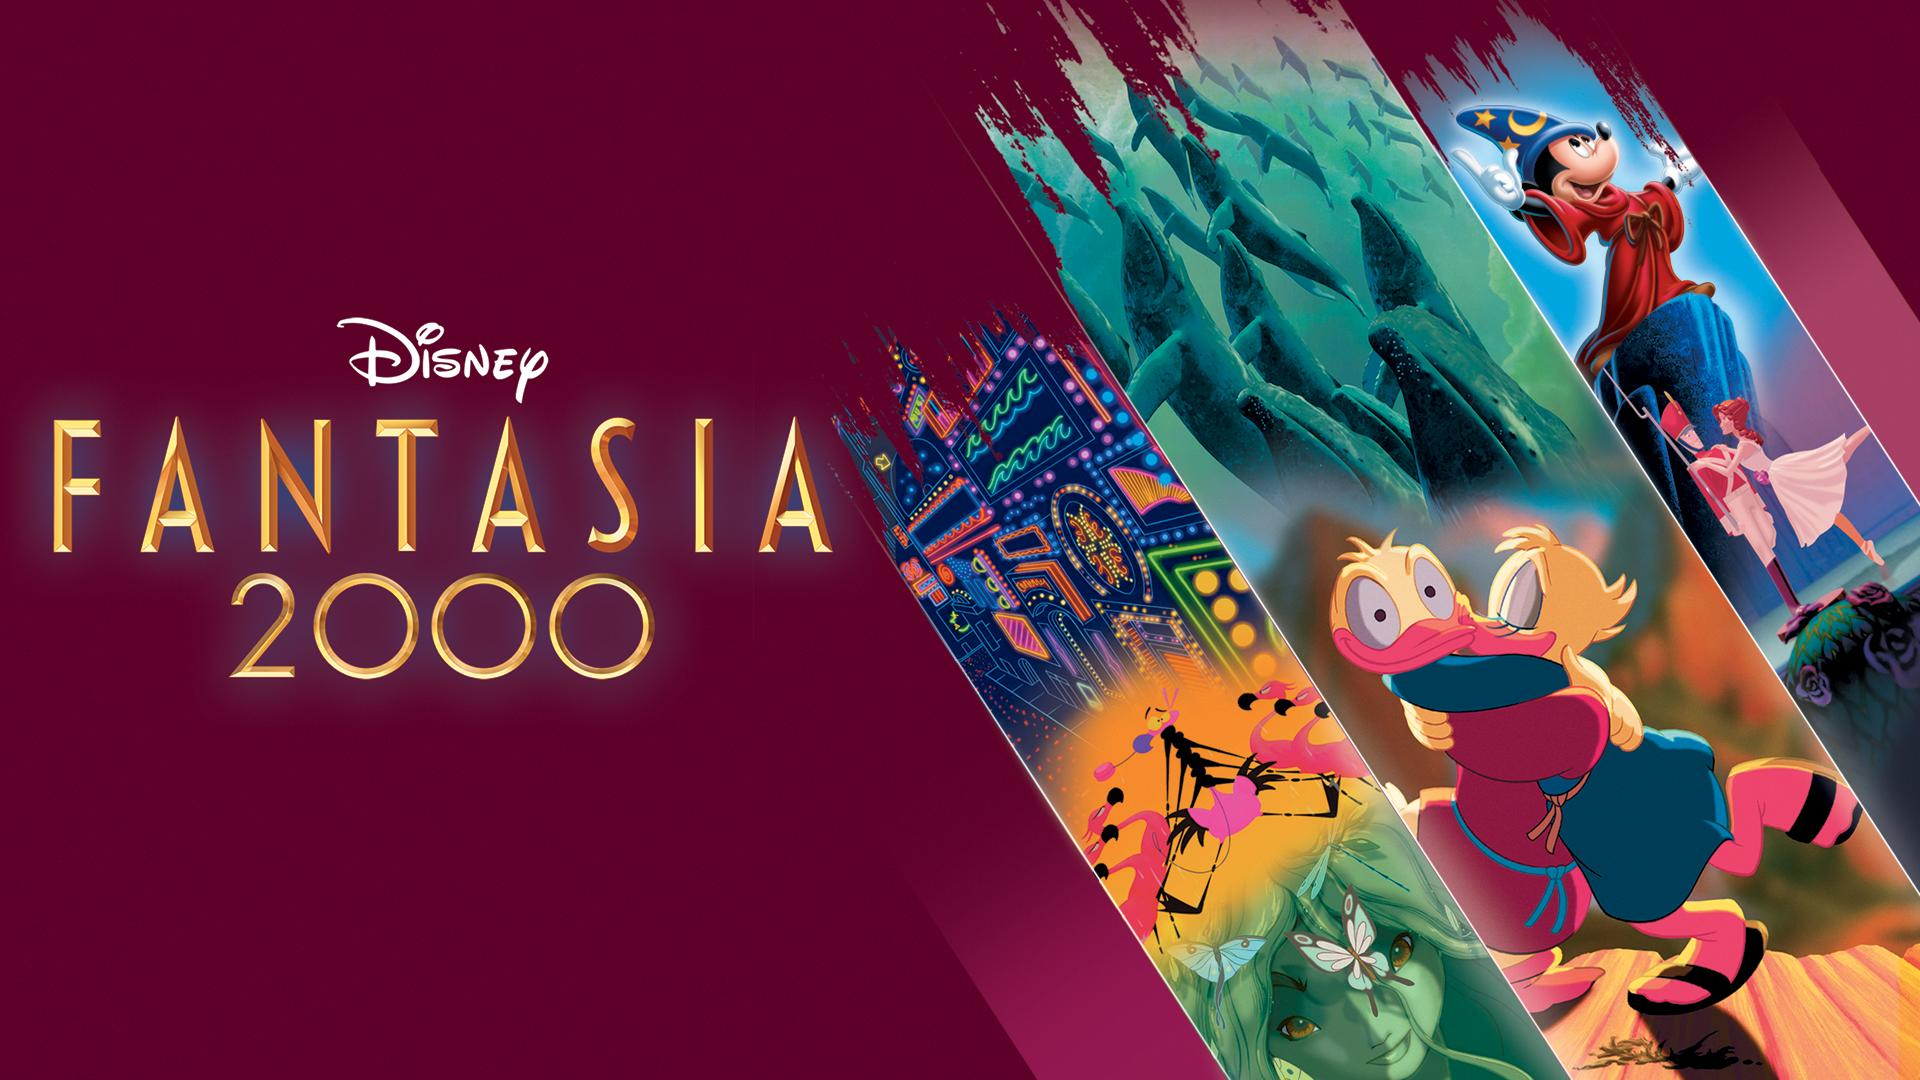 Disney On Twitter Fantasia 2000 2000